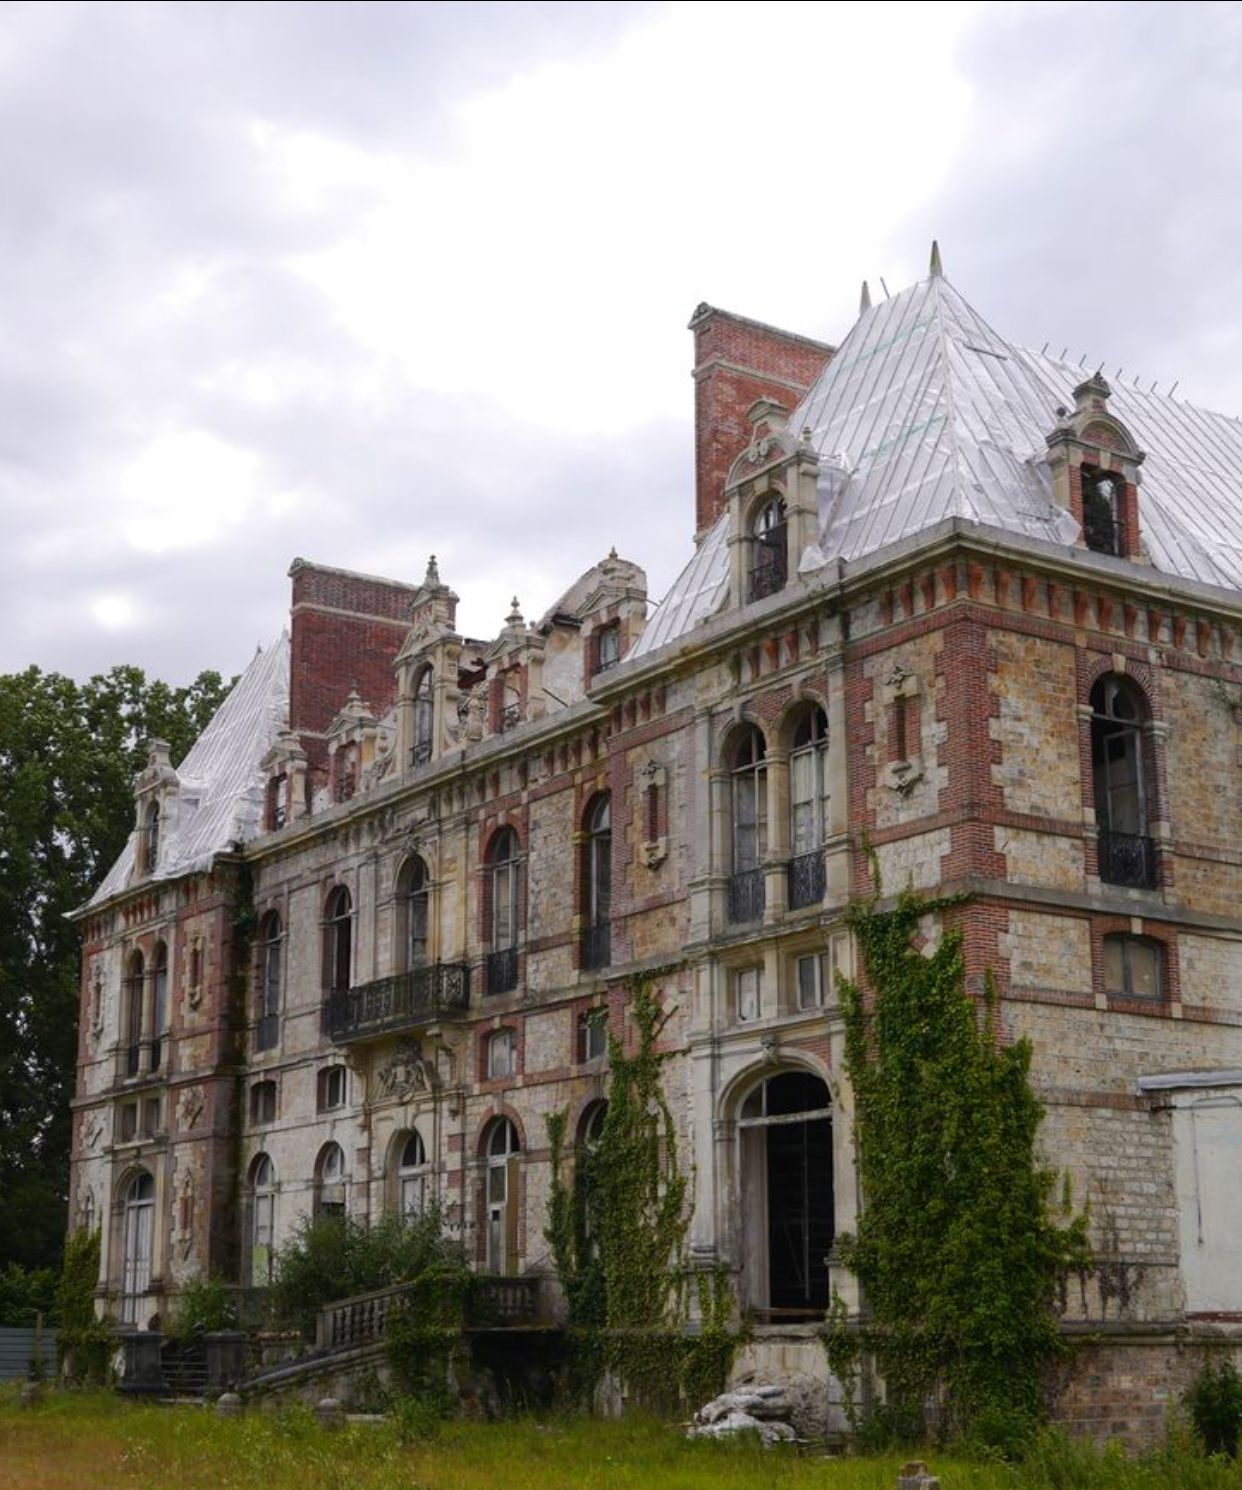 Pin by CaitieLin on Abandoned Places | Abandoned mansions, Abandoned